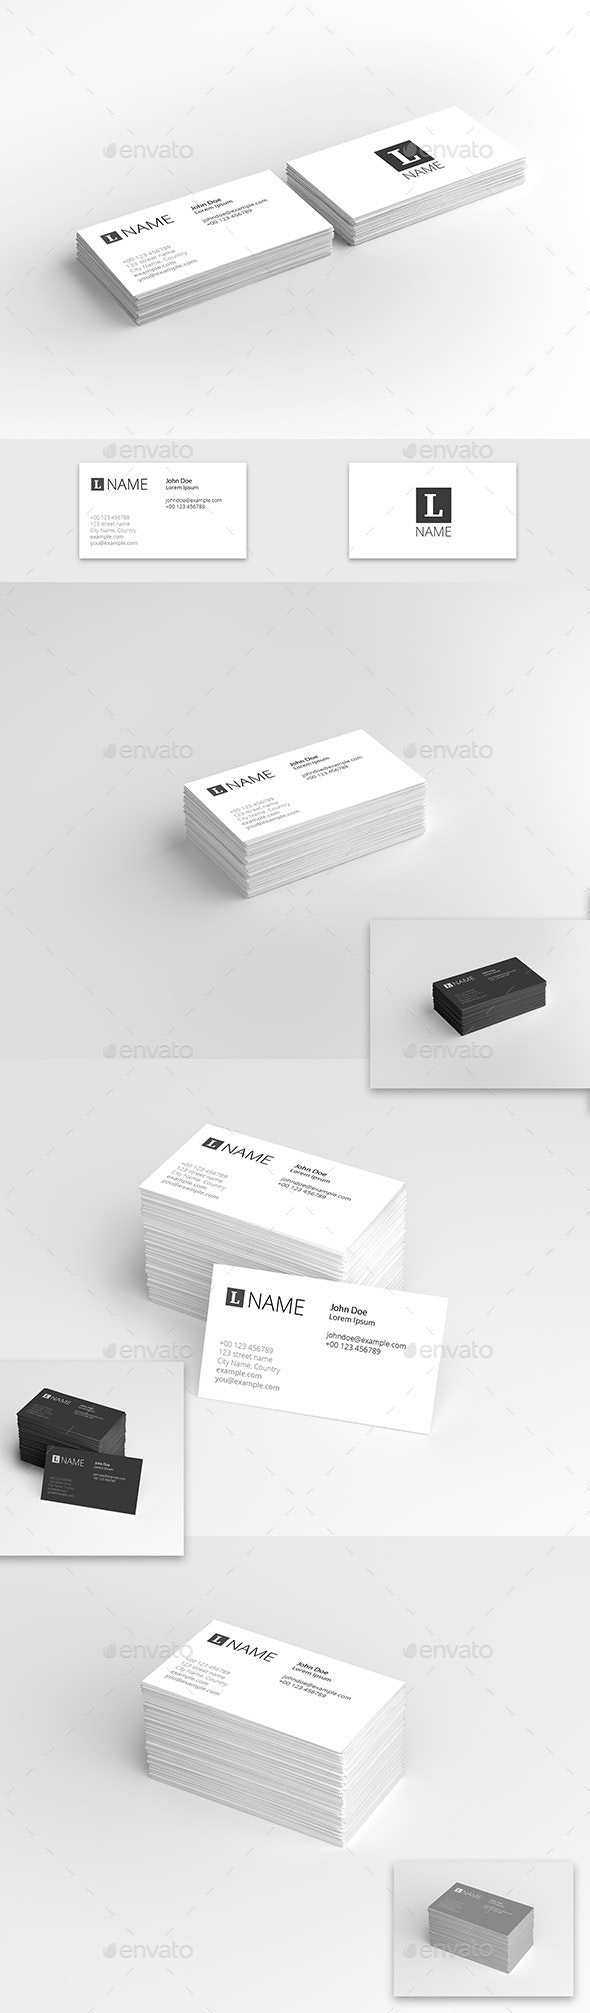 Business Card Presentation Template - Business Cards Print